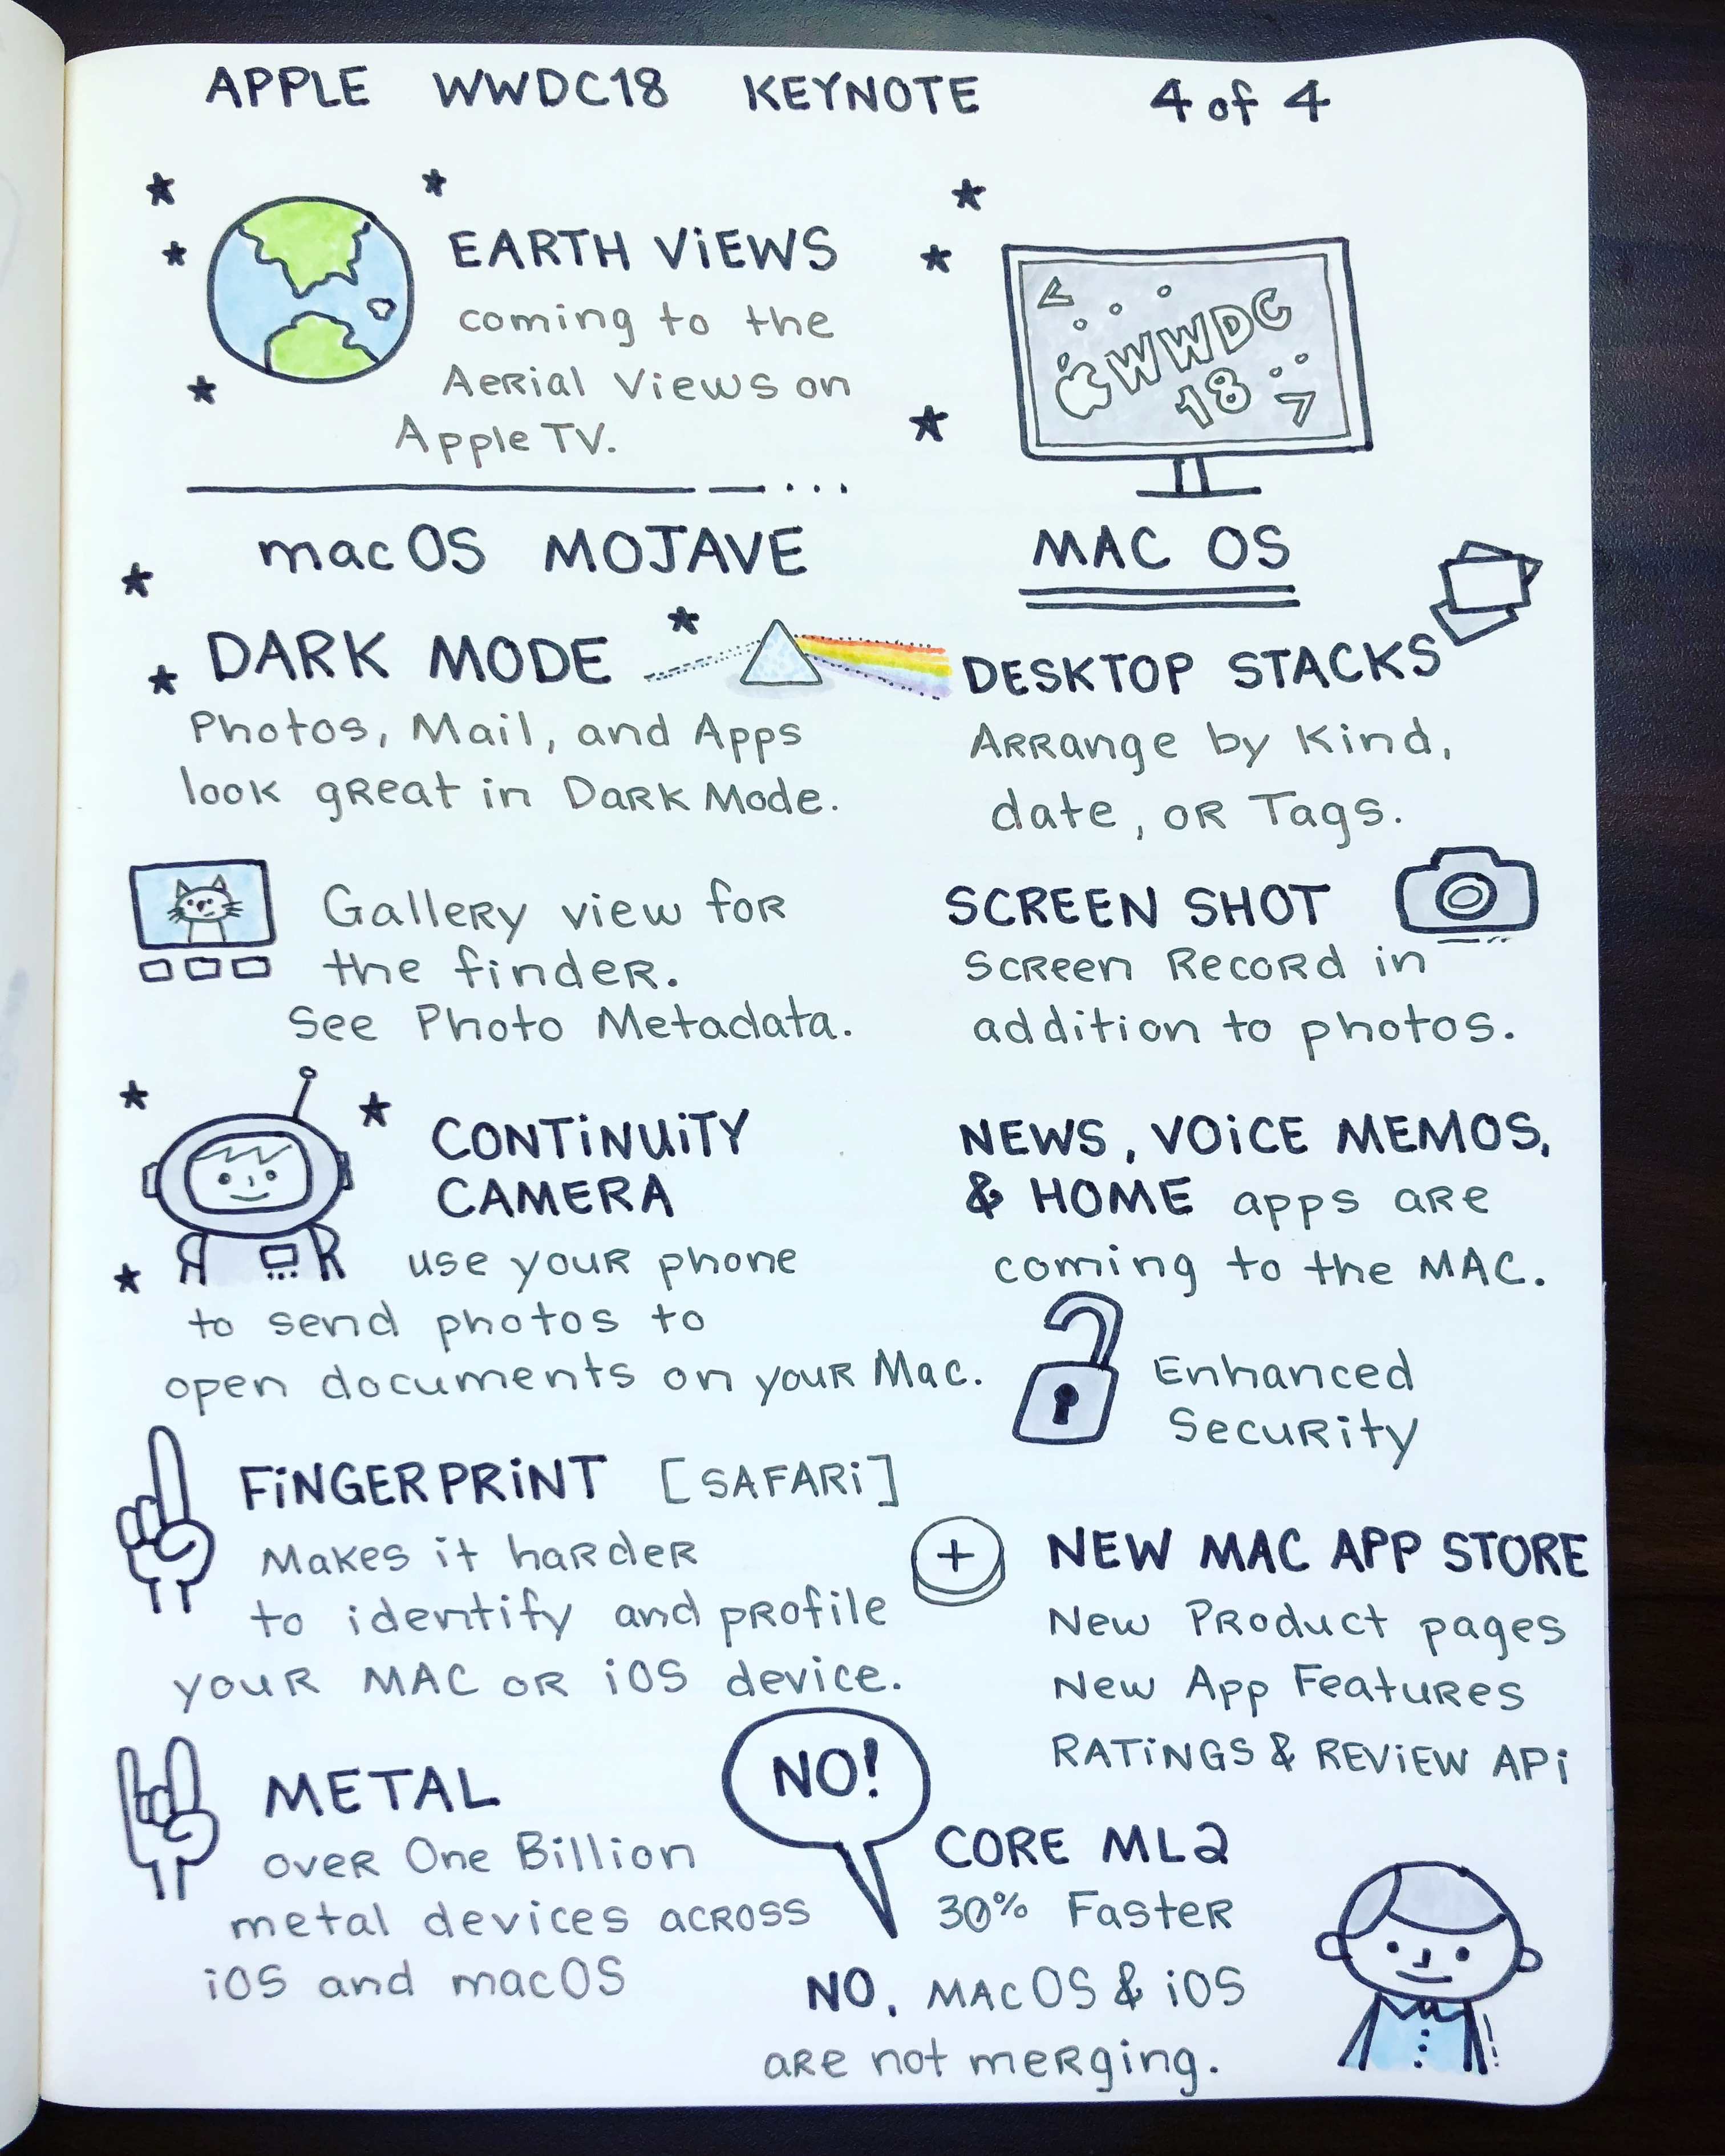 Apple WWDC 2018 keynote in sketchnotes, Part 4 of 4.